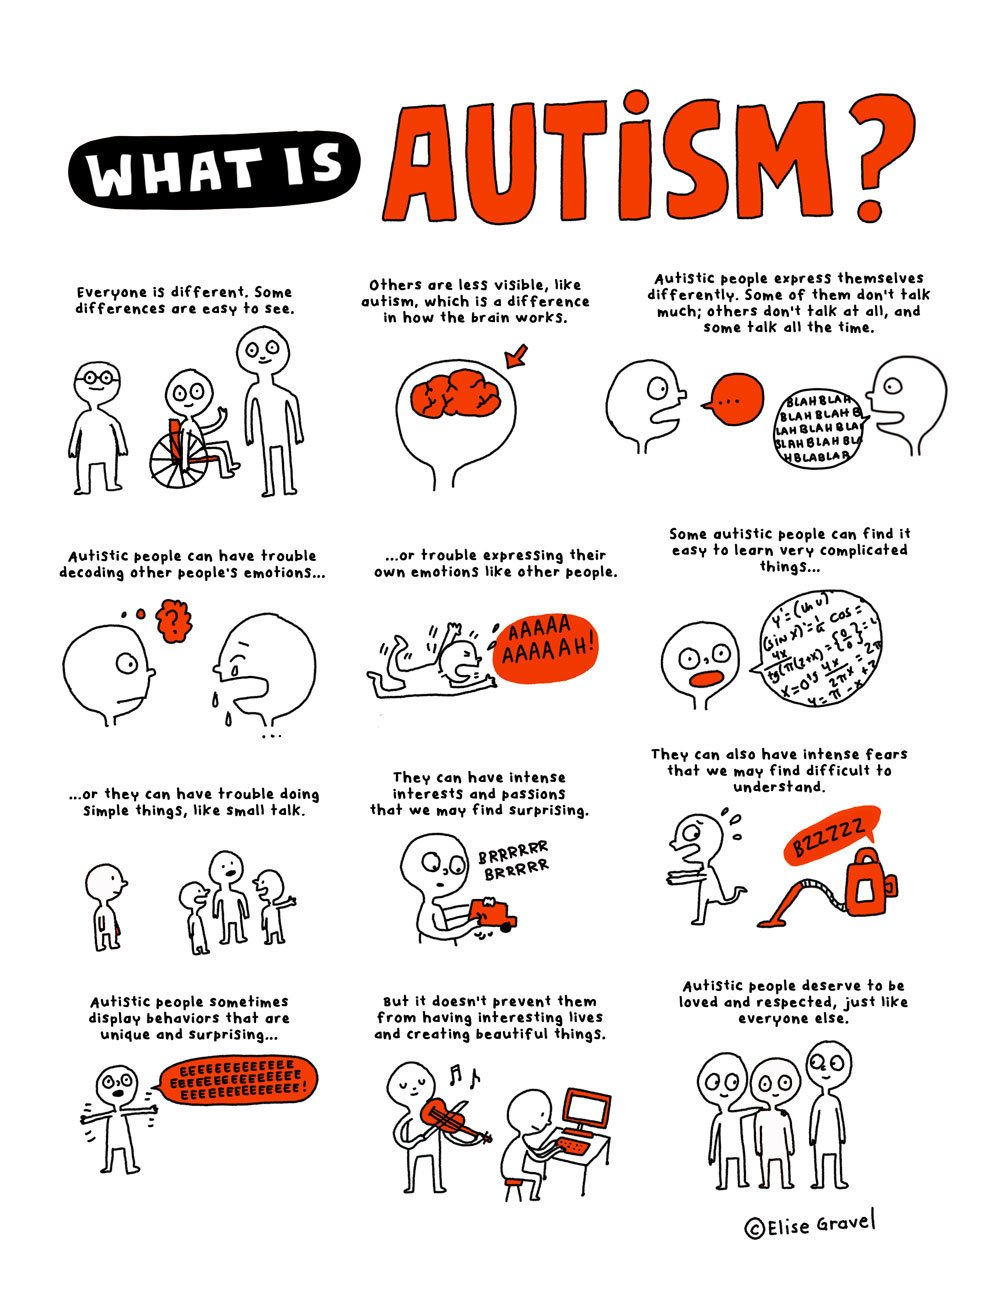 AAA What is Autism?